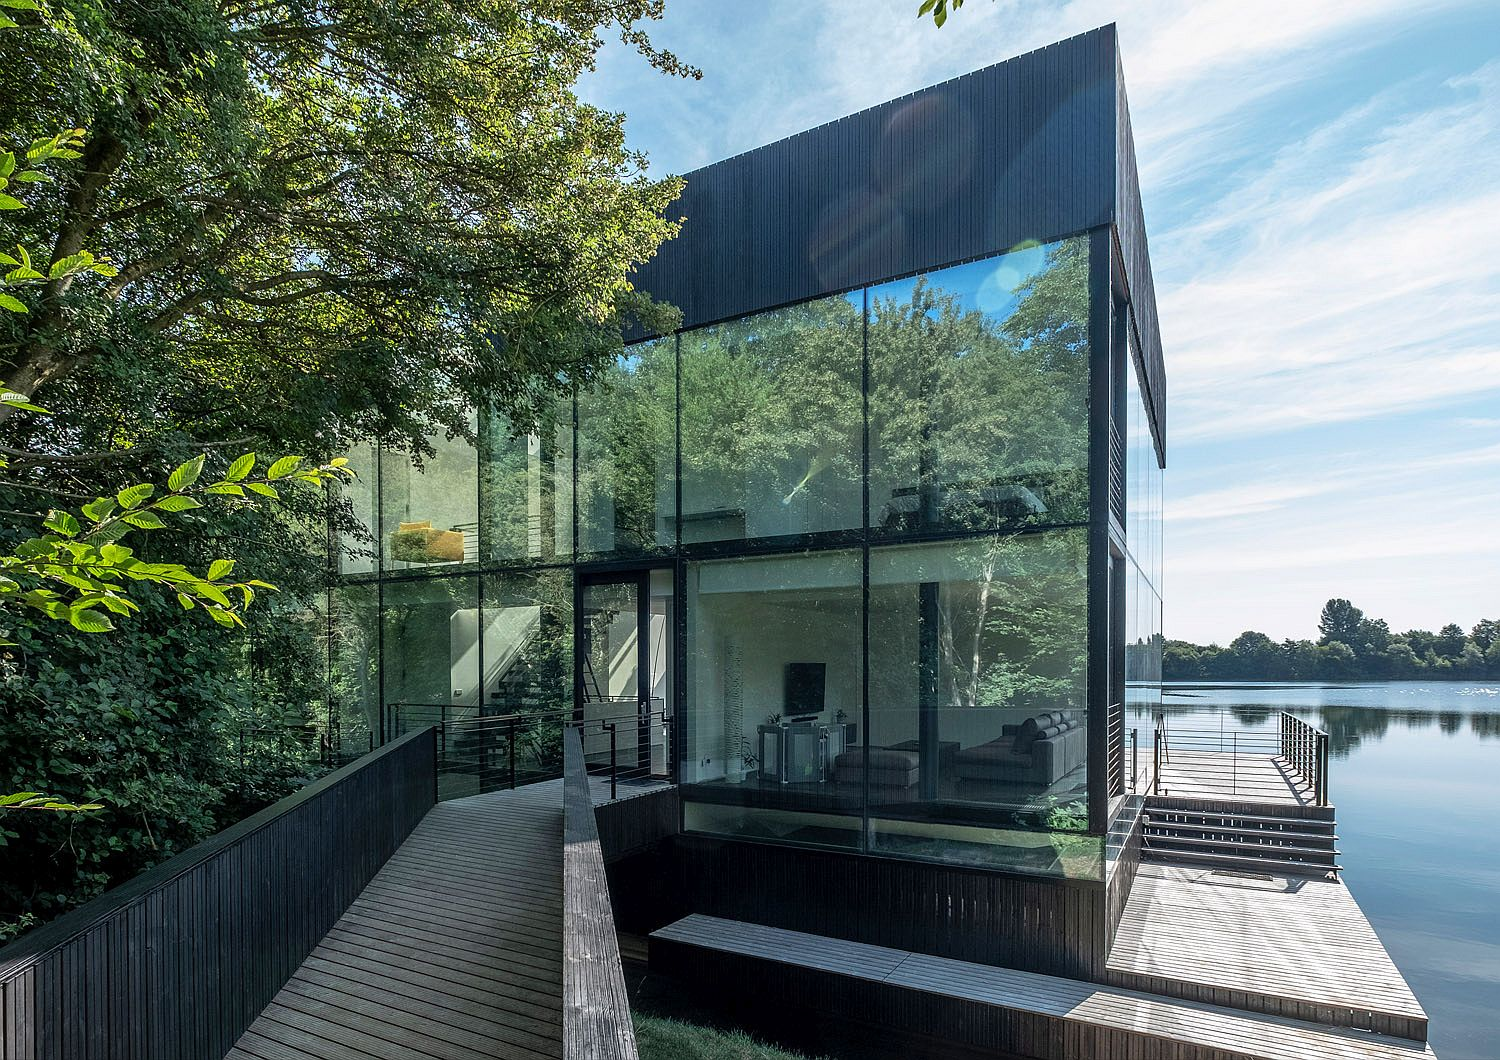 Glass House on the edge of a lake in England